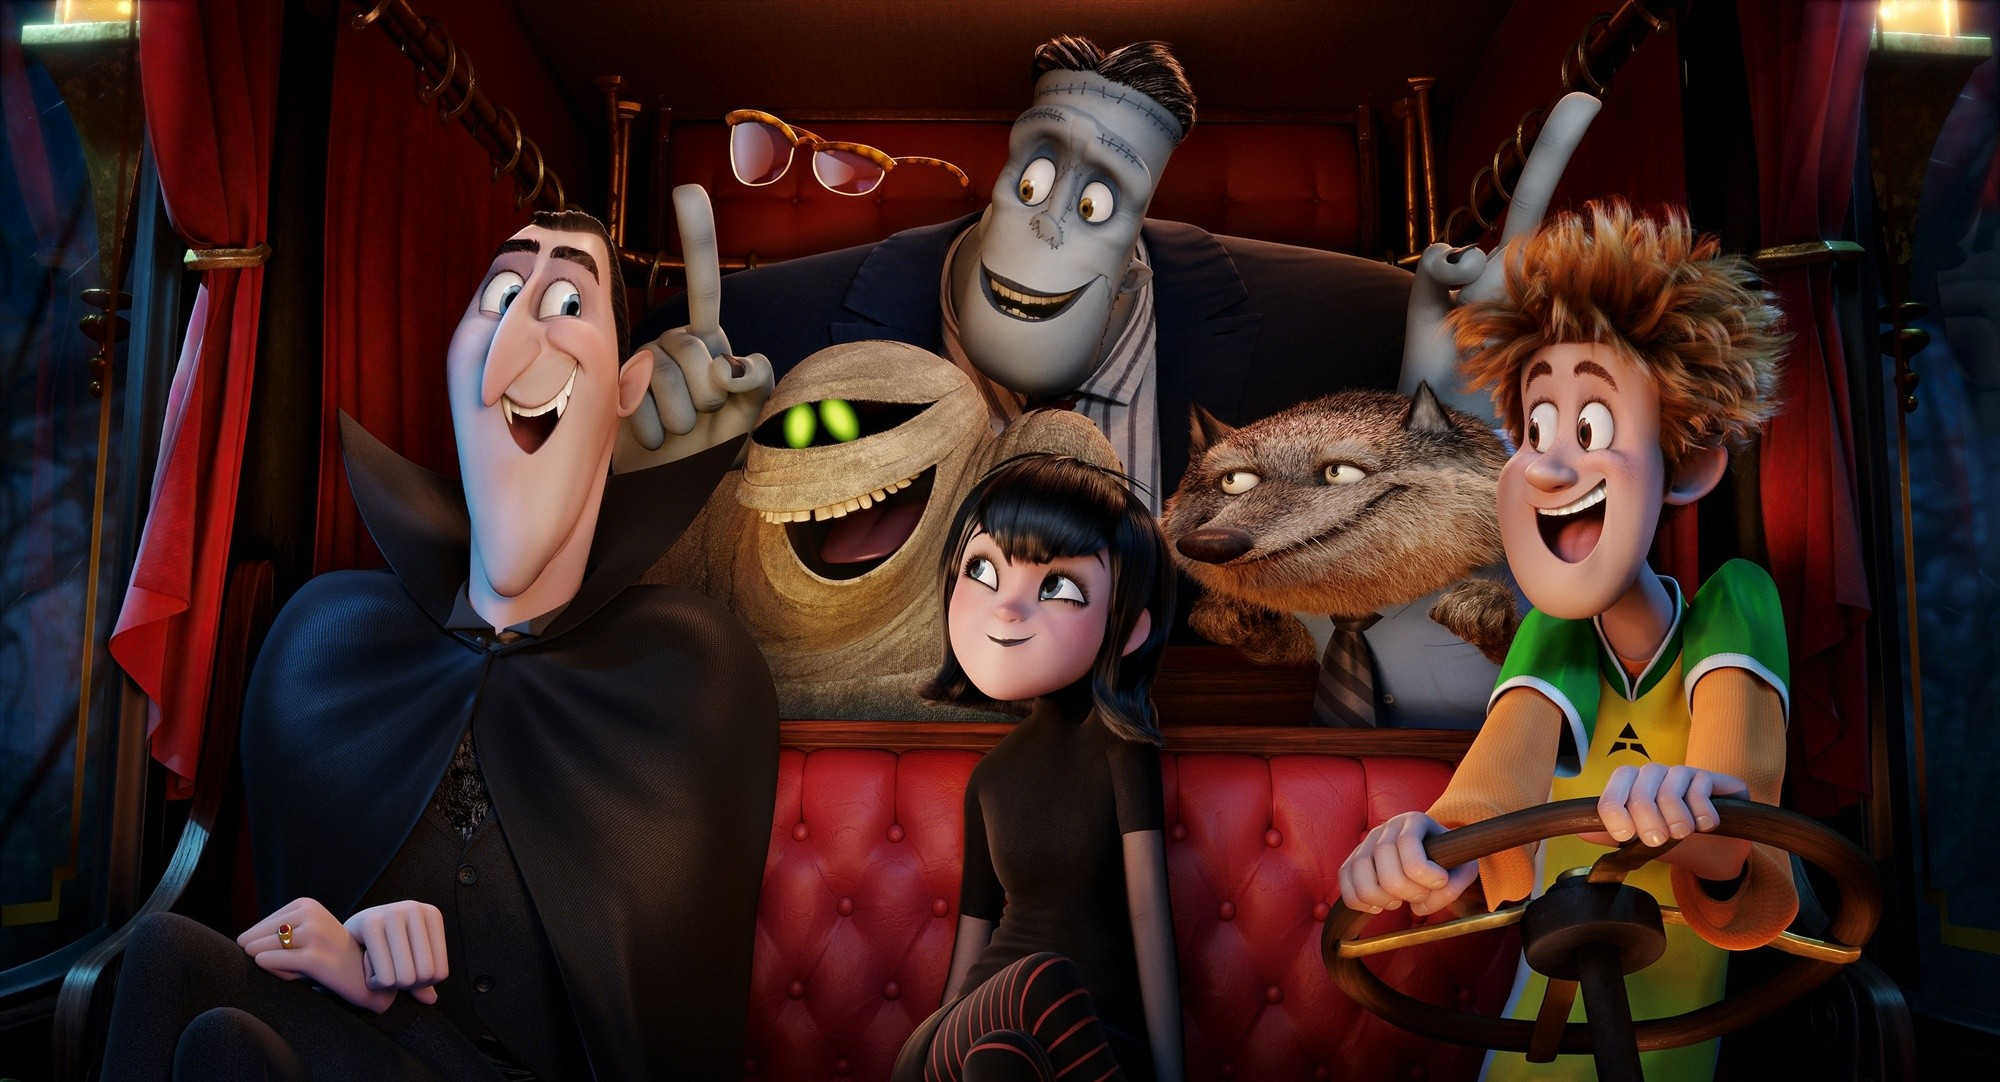 """EXCLUSIVE FOR FIRST USE IN USA TODAY ON 11/26/14 Dracula (Adam Sandler), Griffin the Invisible Man (David Spade), Murray (Keegan-Michael Key), Frank (Kevin James), Mavis (Selena Gomez), Wayne (Steve Buscemi) and Johnny (Andy Samberg) in a scene from the animated motion picture """"Hotel Transylvania 2."""" CREDIT: Sony Pictures Animation [Via MerlinFTP Drop]"""